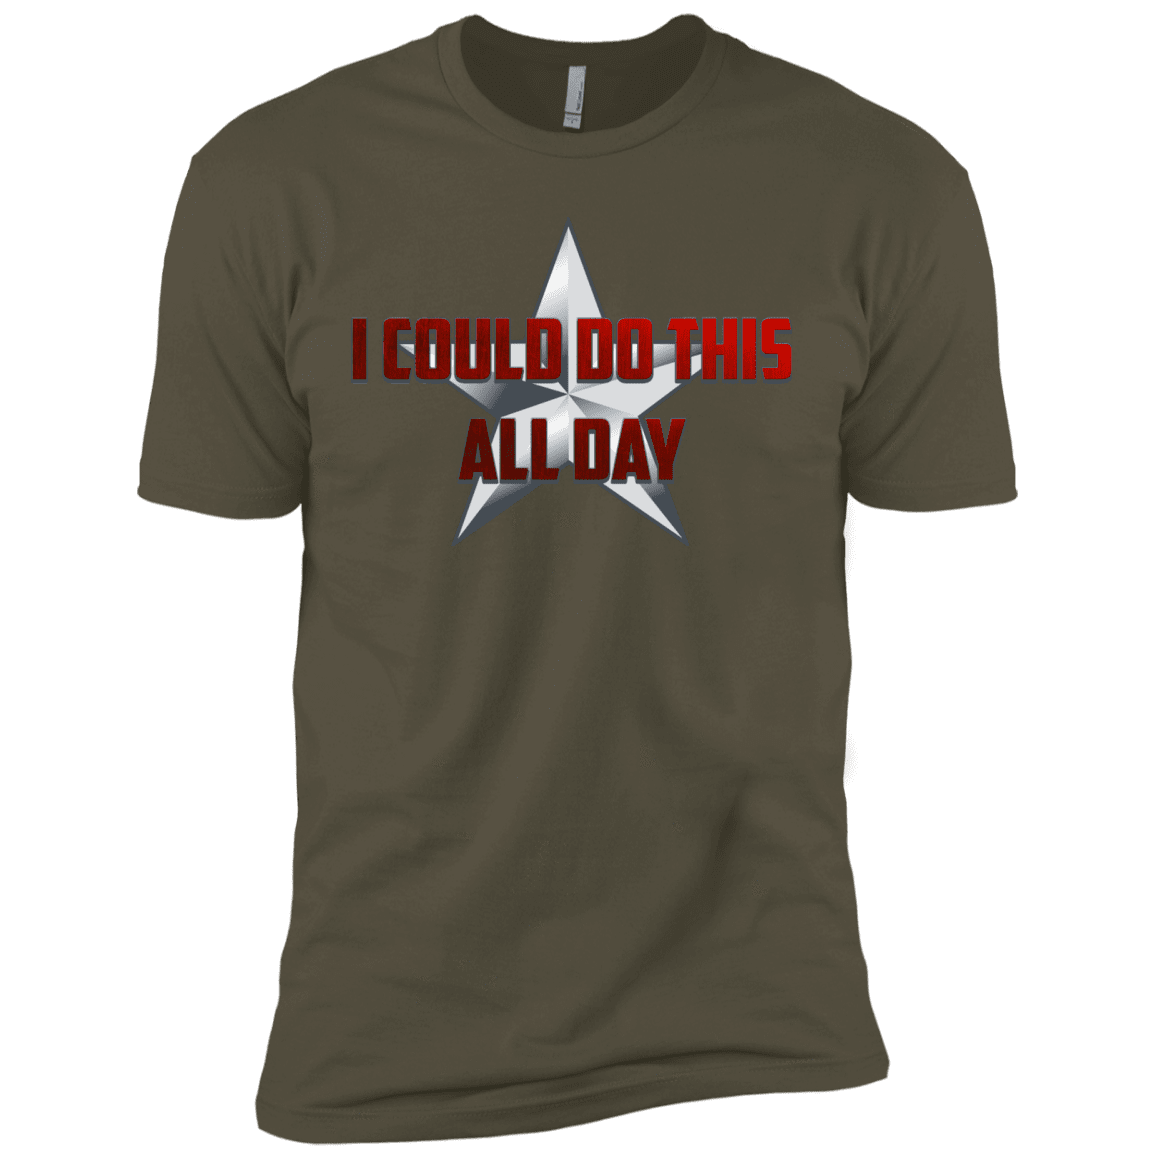 T-Shirts Military Green / X-Small All Day Men's Premium T-Shirt